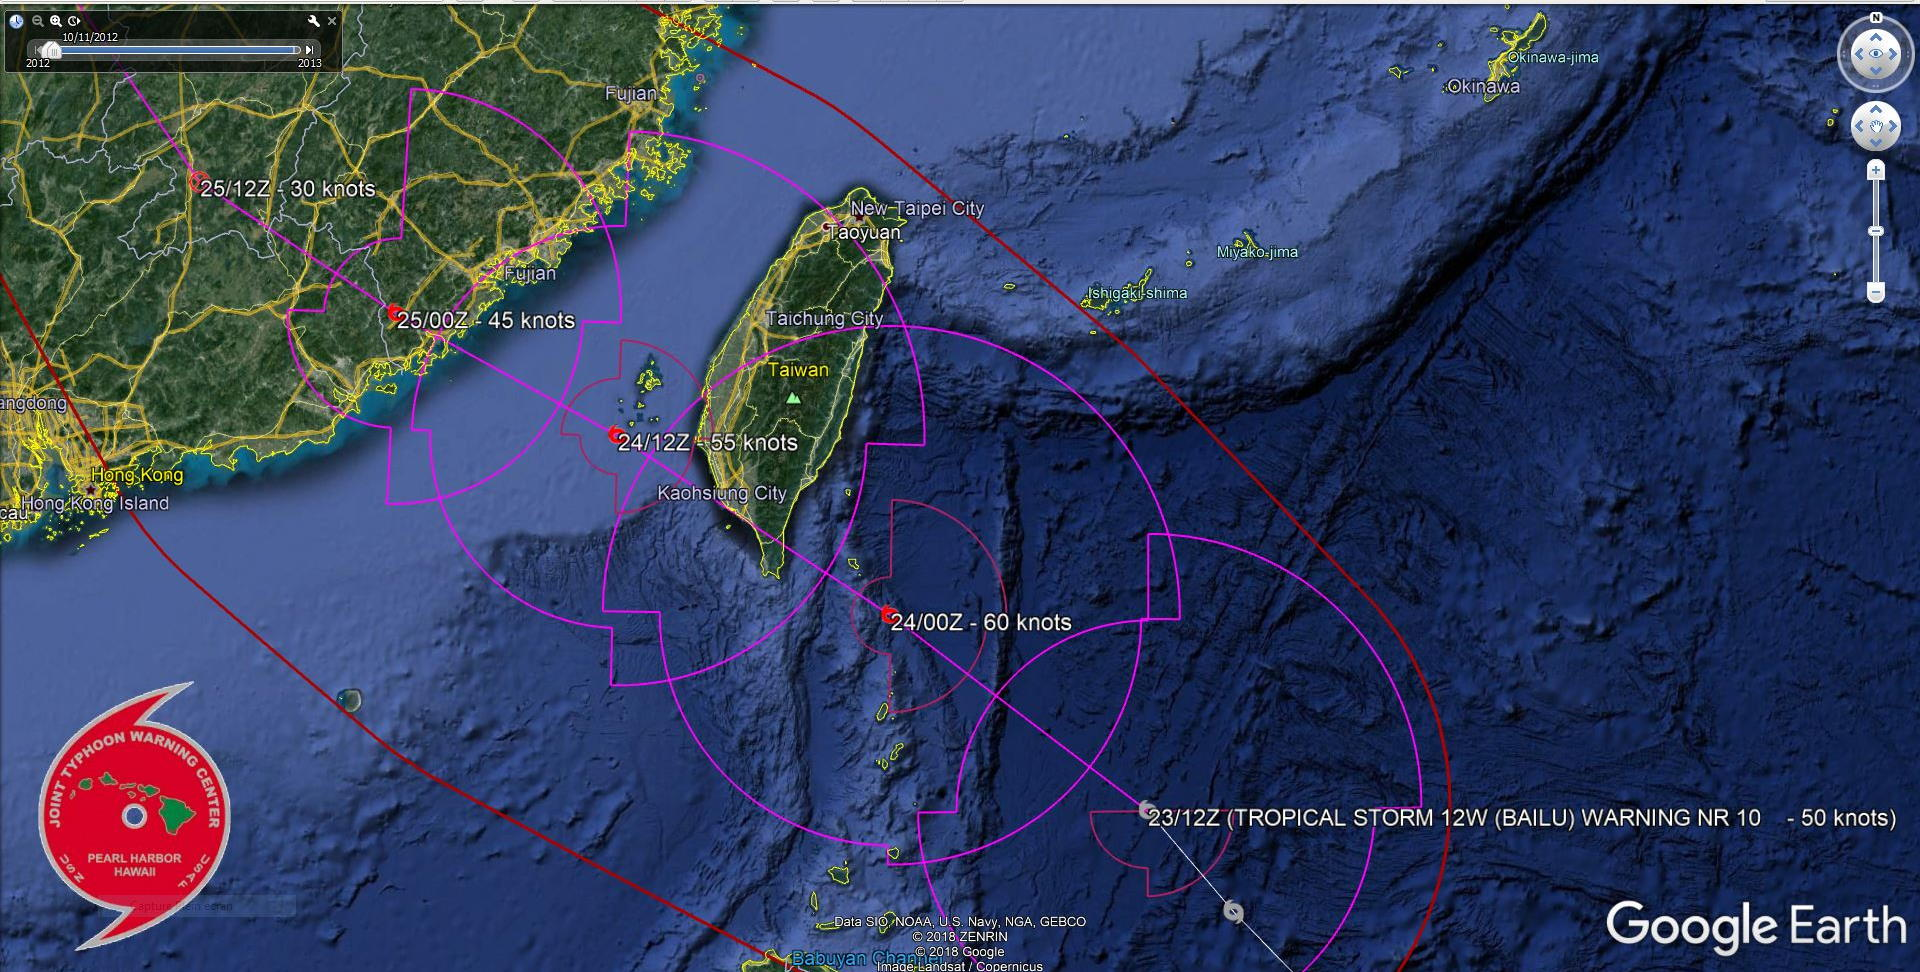 TS Bailu(12W) forecast to track over southern Taiwan shortly after 12h near minimal typhoon intensity